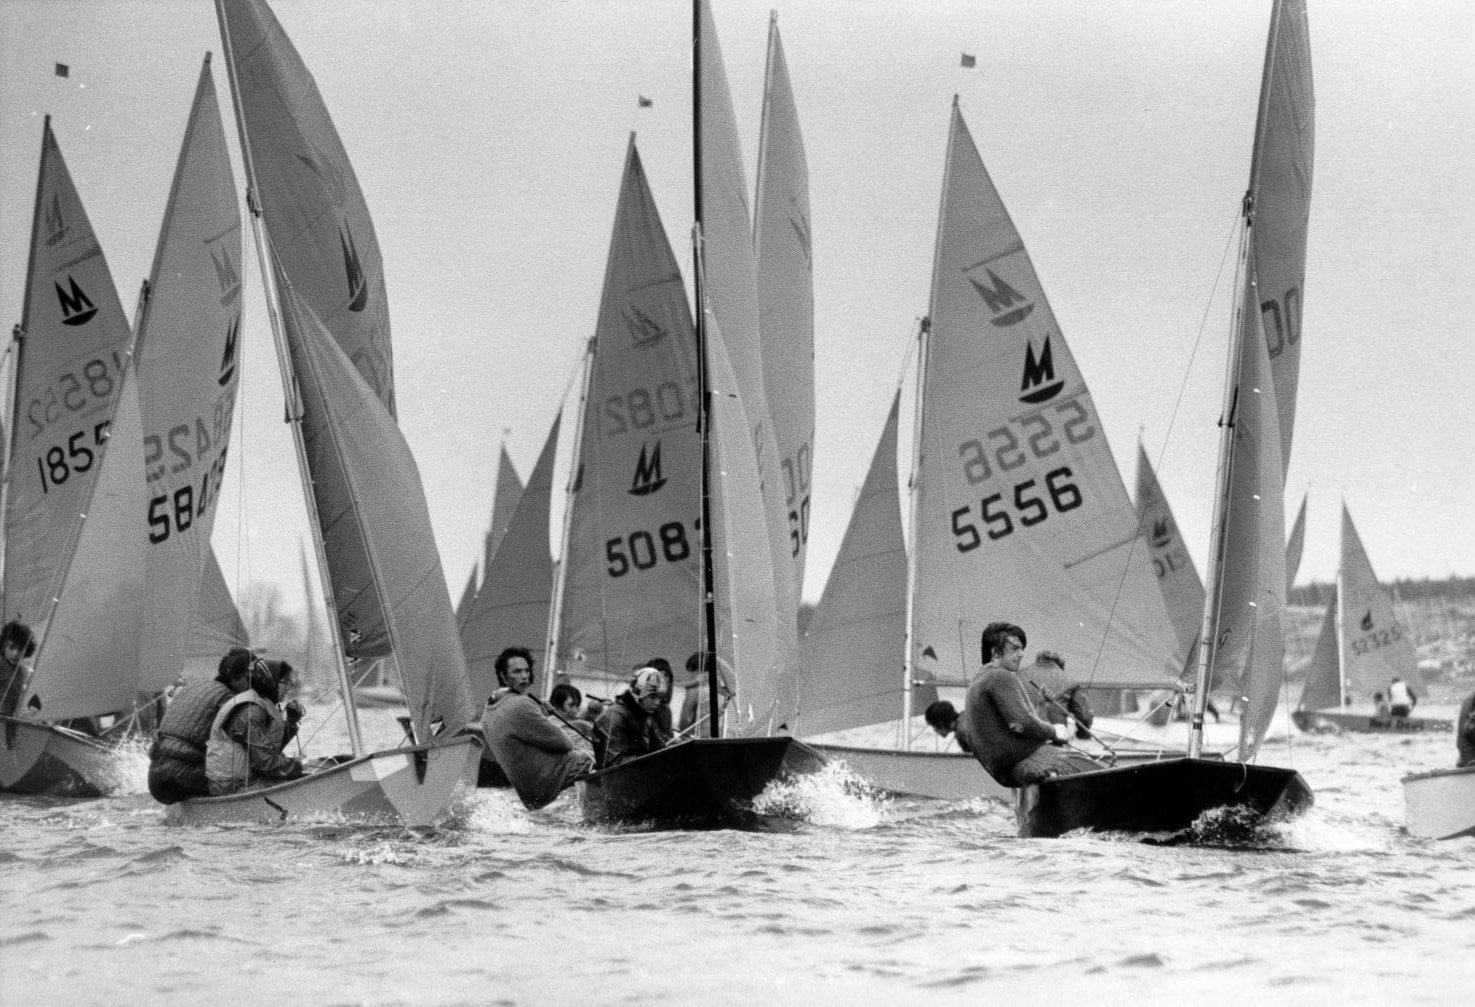 Mirror dinghies racing neck and neck about to round a mark